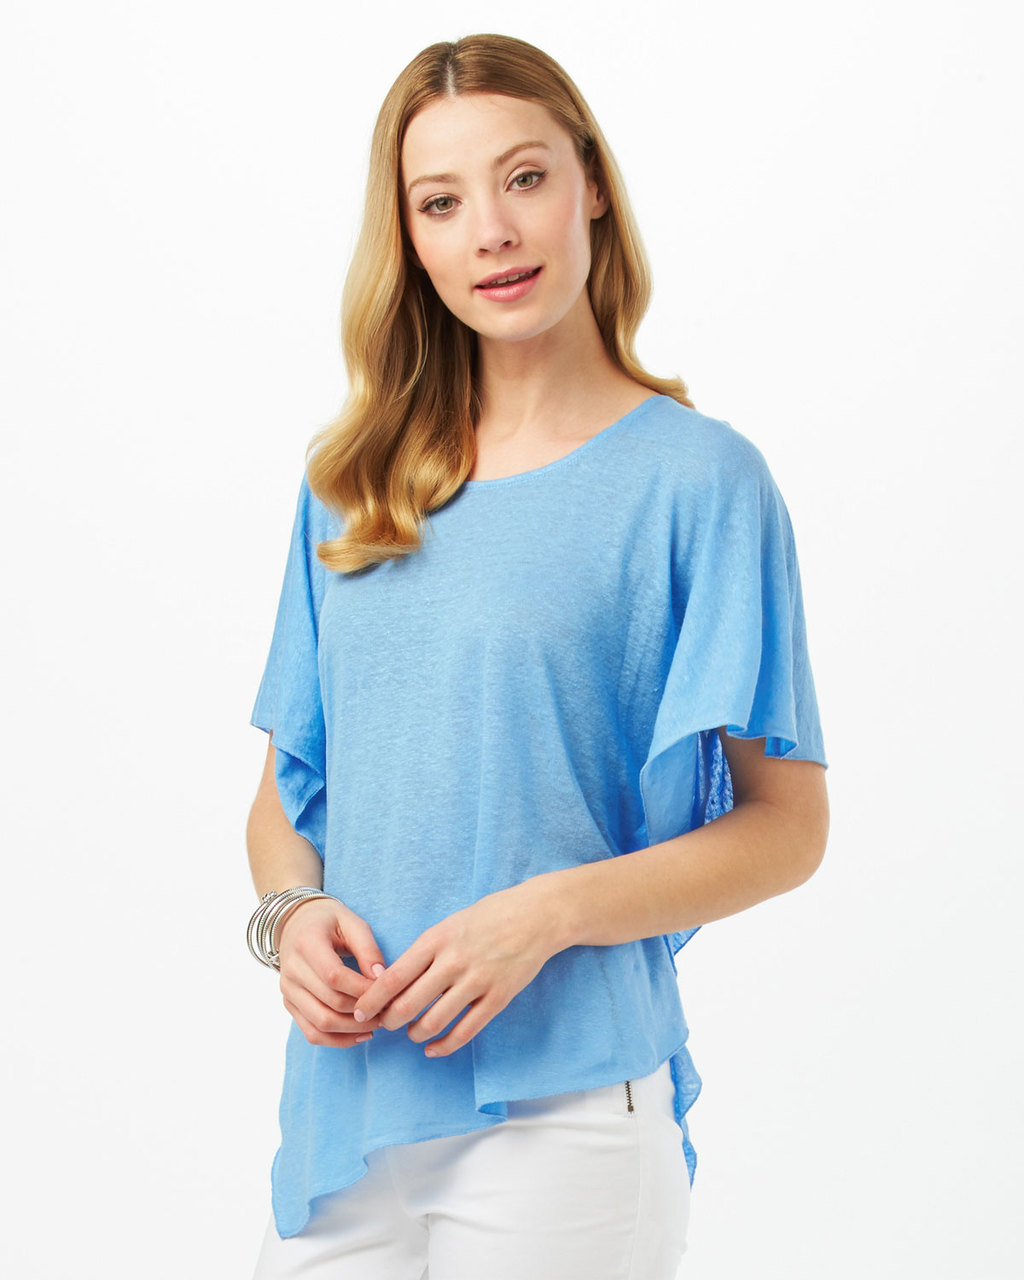 Thekla Asymmetric Linen Top - neckline: round neck; sleeve style: angel/waterfall; pattern: plain; predominant colour: diva blue; occasions: casual, creative work; length: standard; style: top; fibres: linen - 100%; fit: loose; sleeve length: short sleeve; pattern type: fabric; texture group: jersey - stretchy/drapey; season: s/s 2016; wardrobe: highlight